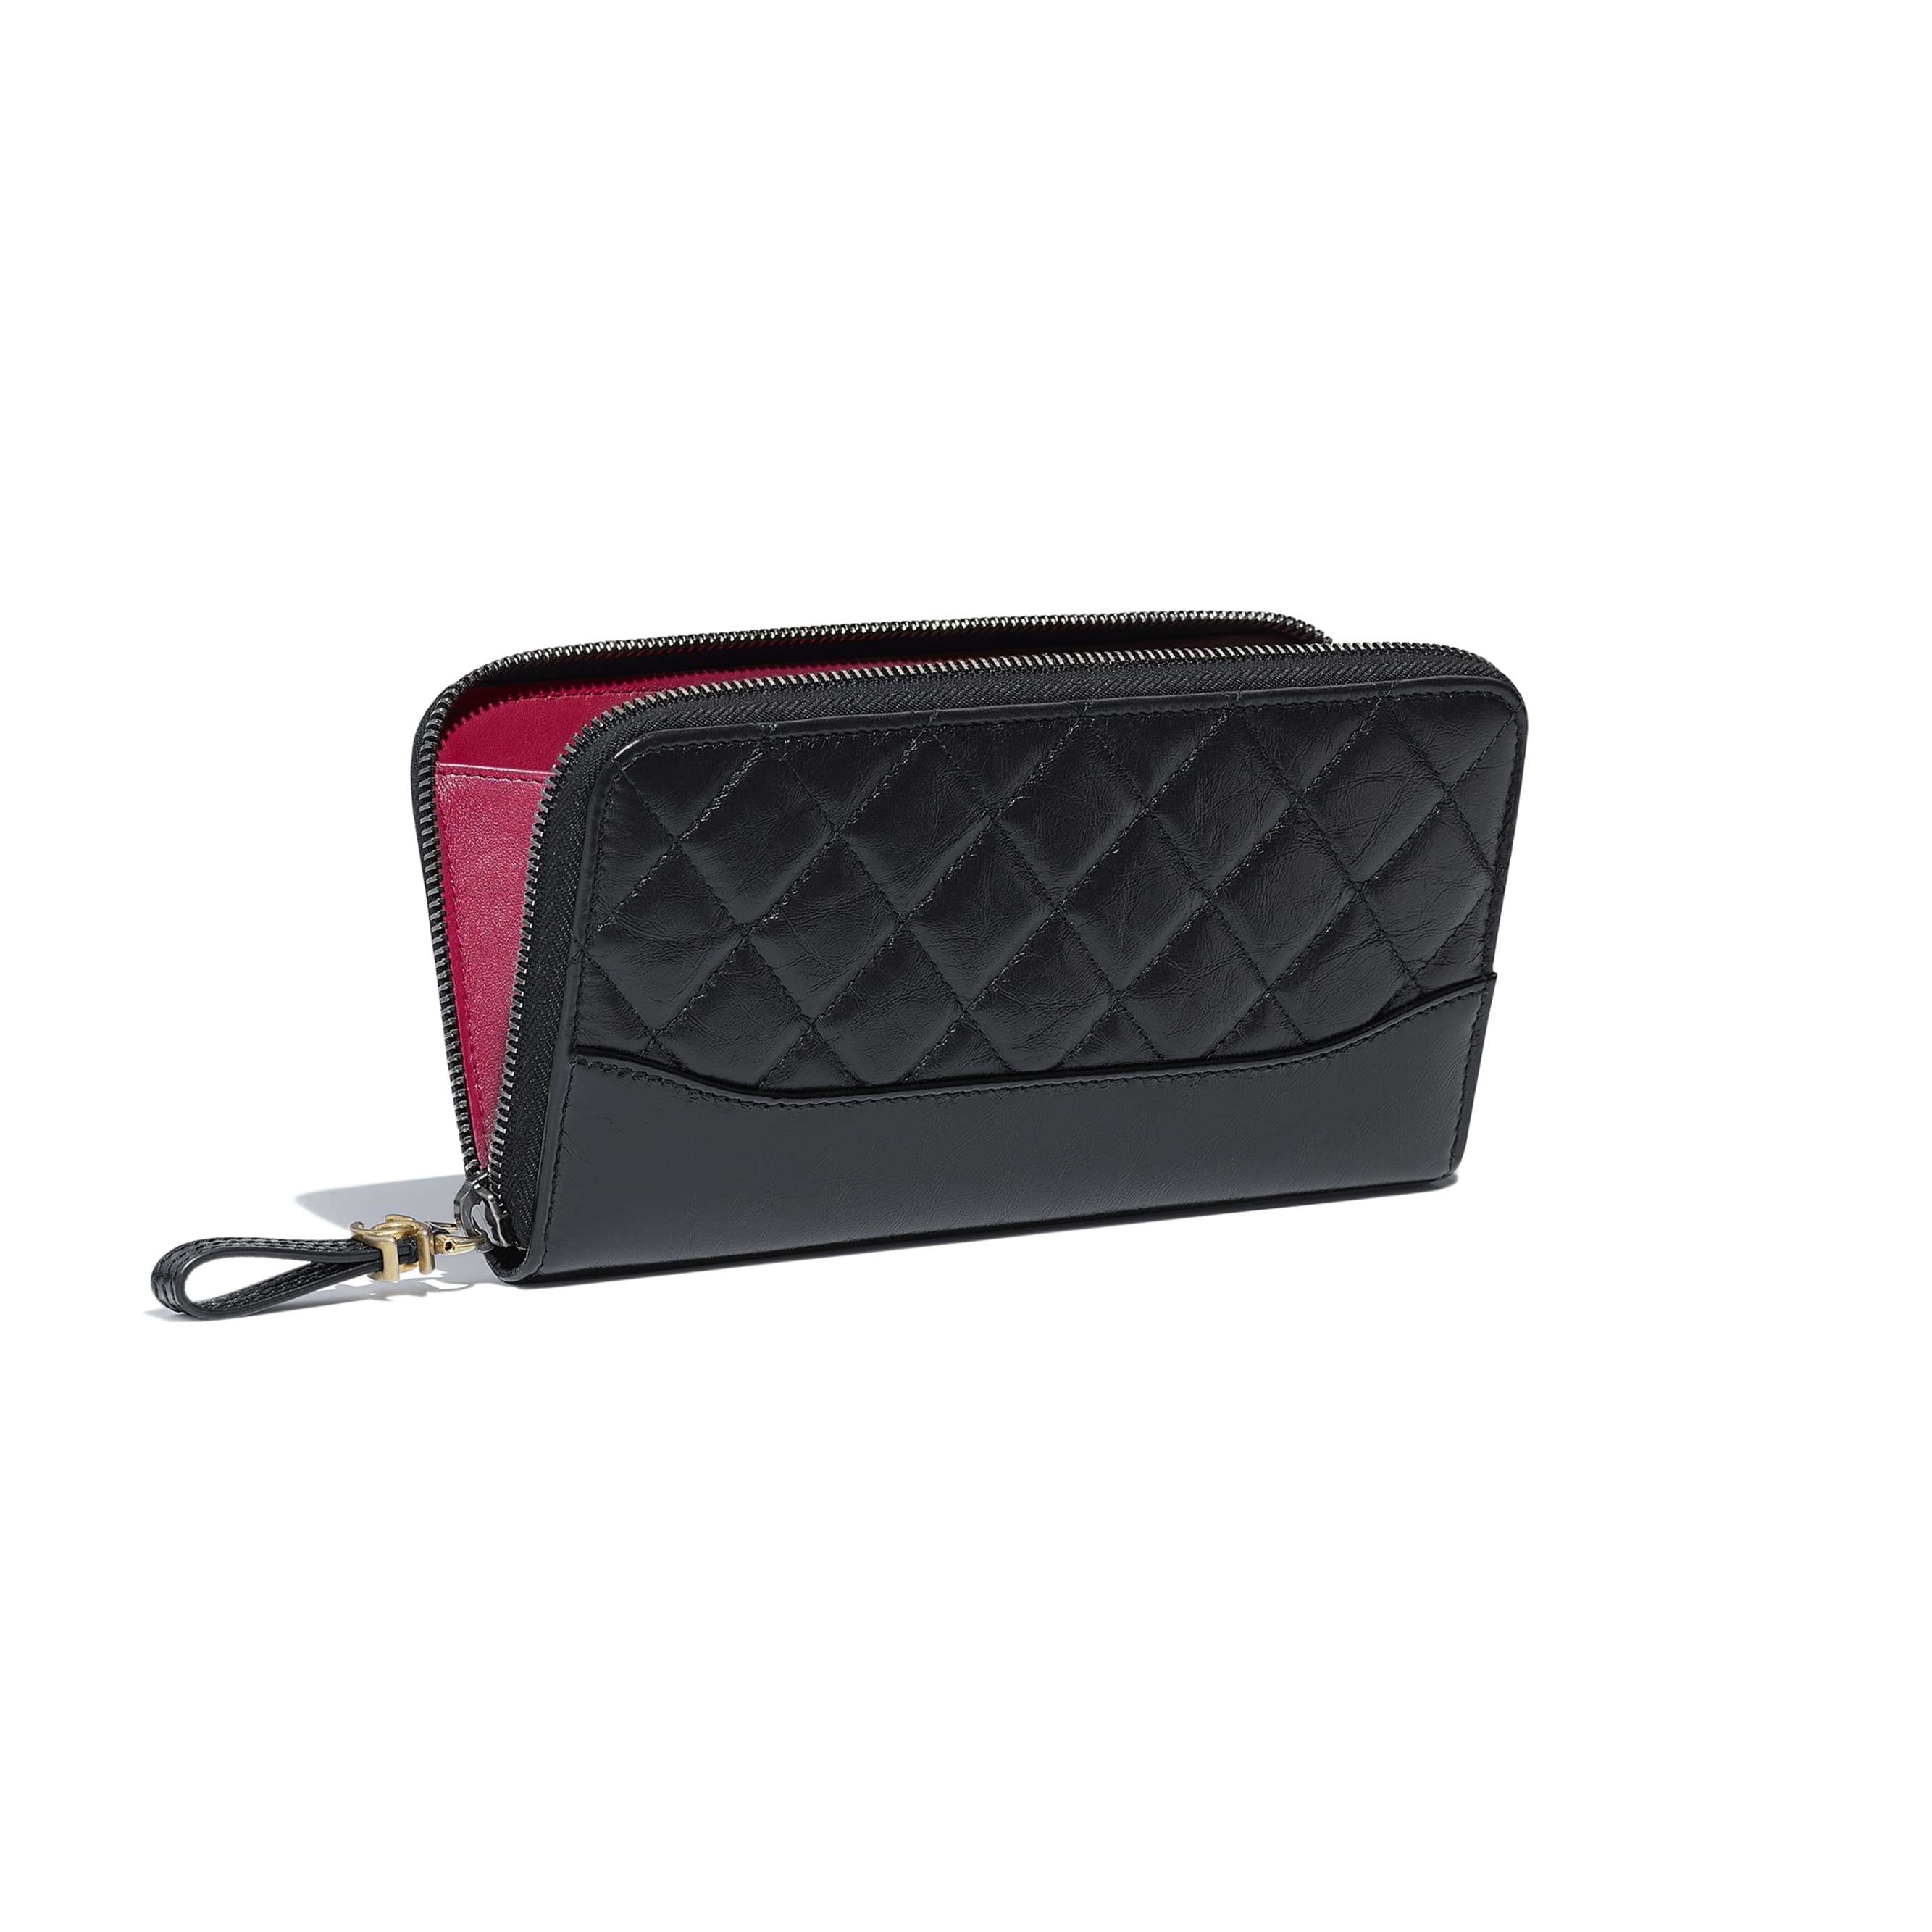 Long Zipped Wallet - Black - Aged Calfskin, Smooth Calfskin, Gold-Tone, Silver-Tone & Ruthenium-Finish Metal - CHANEL - Other view - see standard sized version